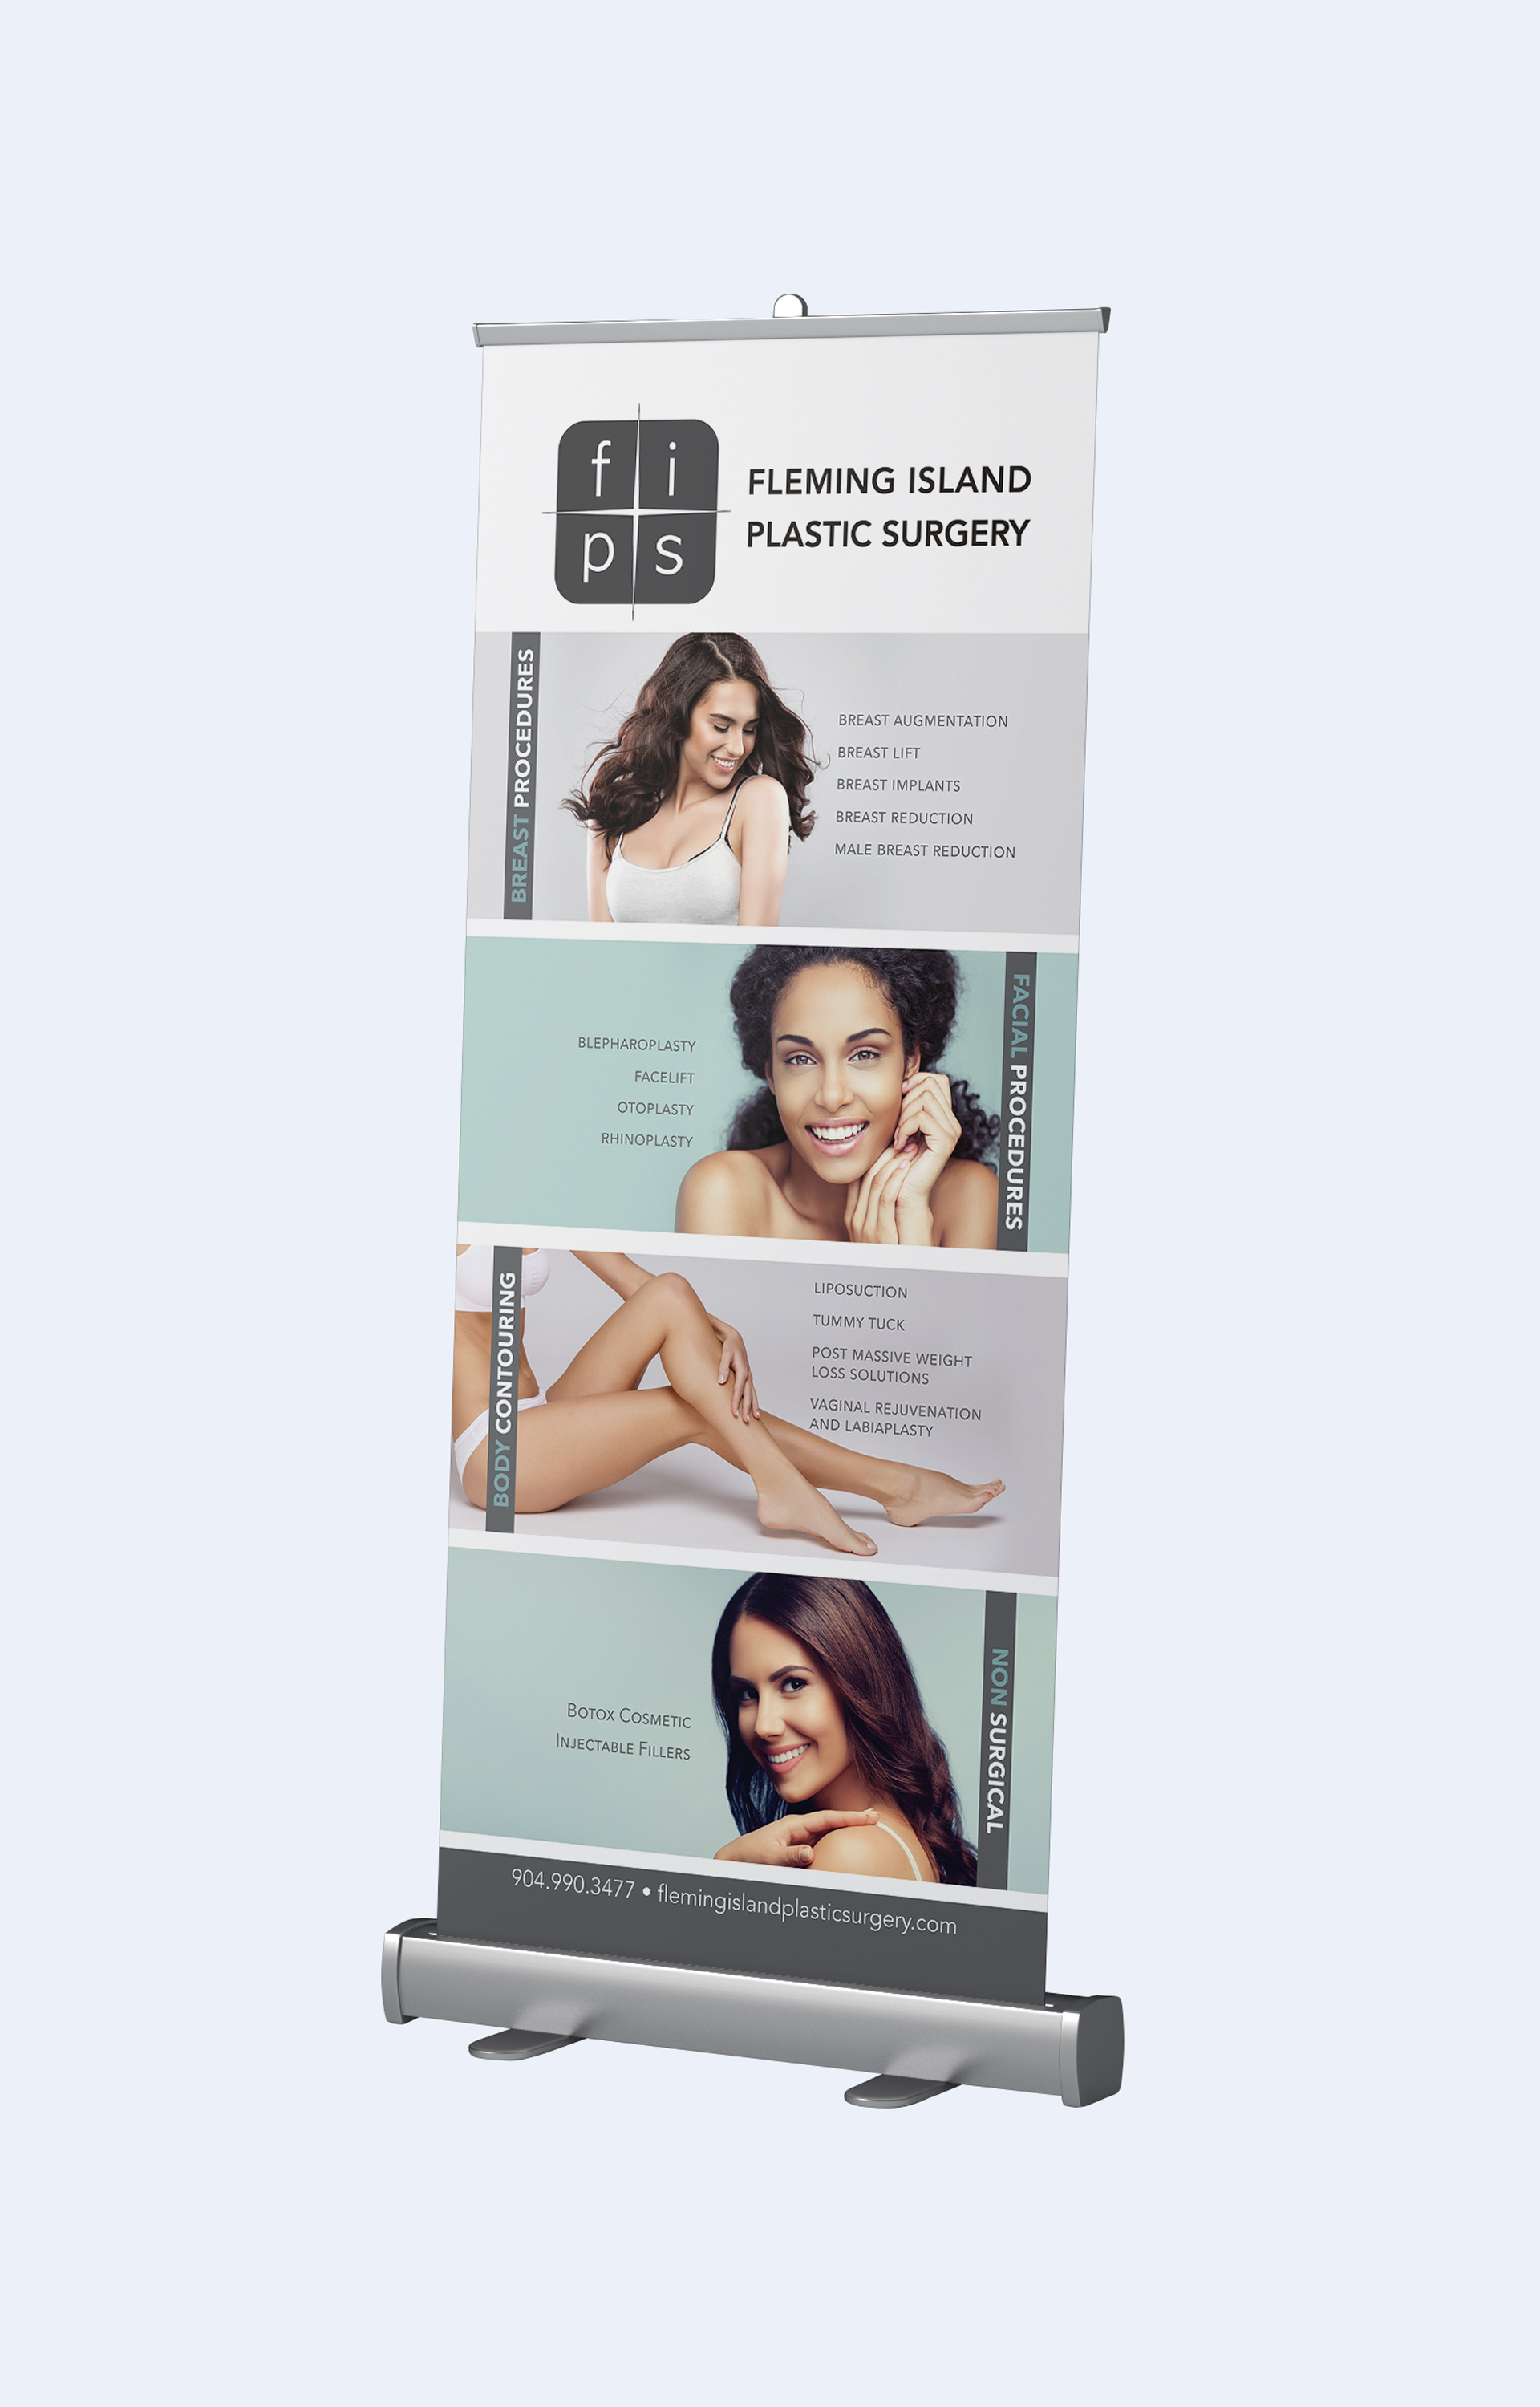 Fleming Island Plastic Surgery Rollerbanner